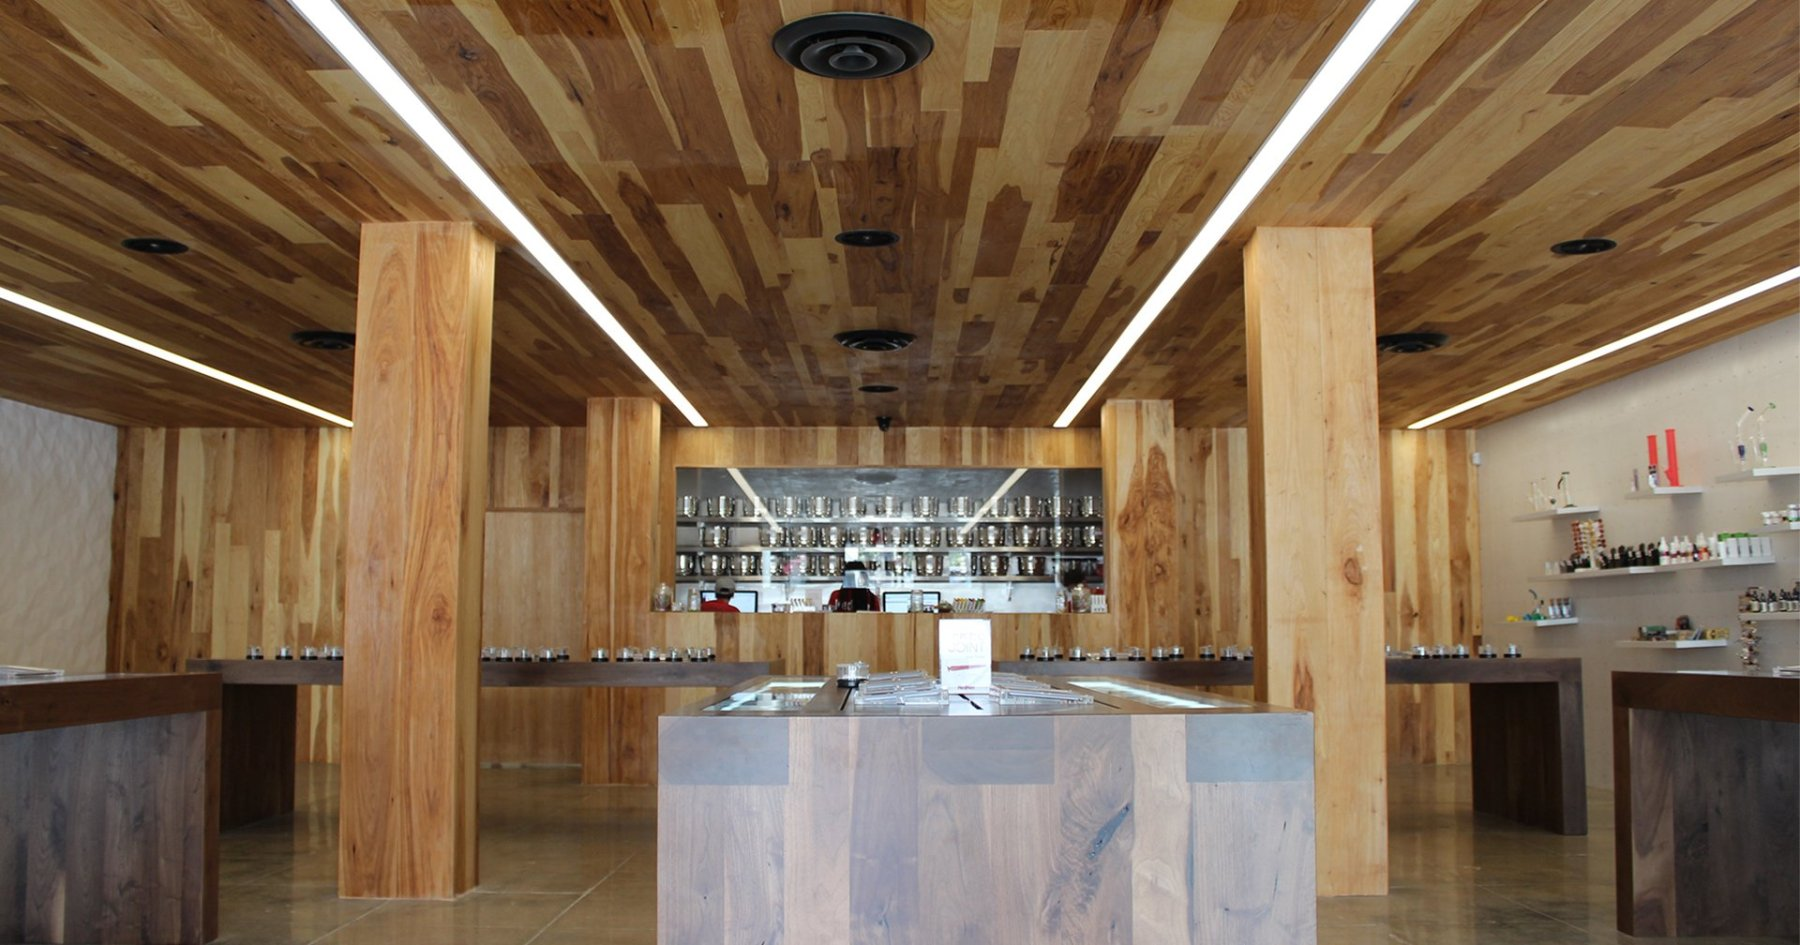 The Apple Store of Cannabis Just Opened